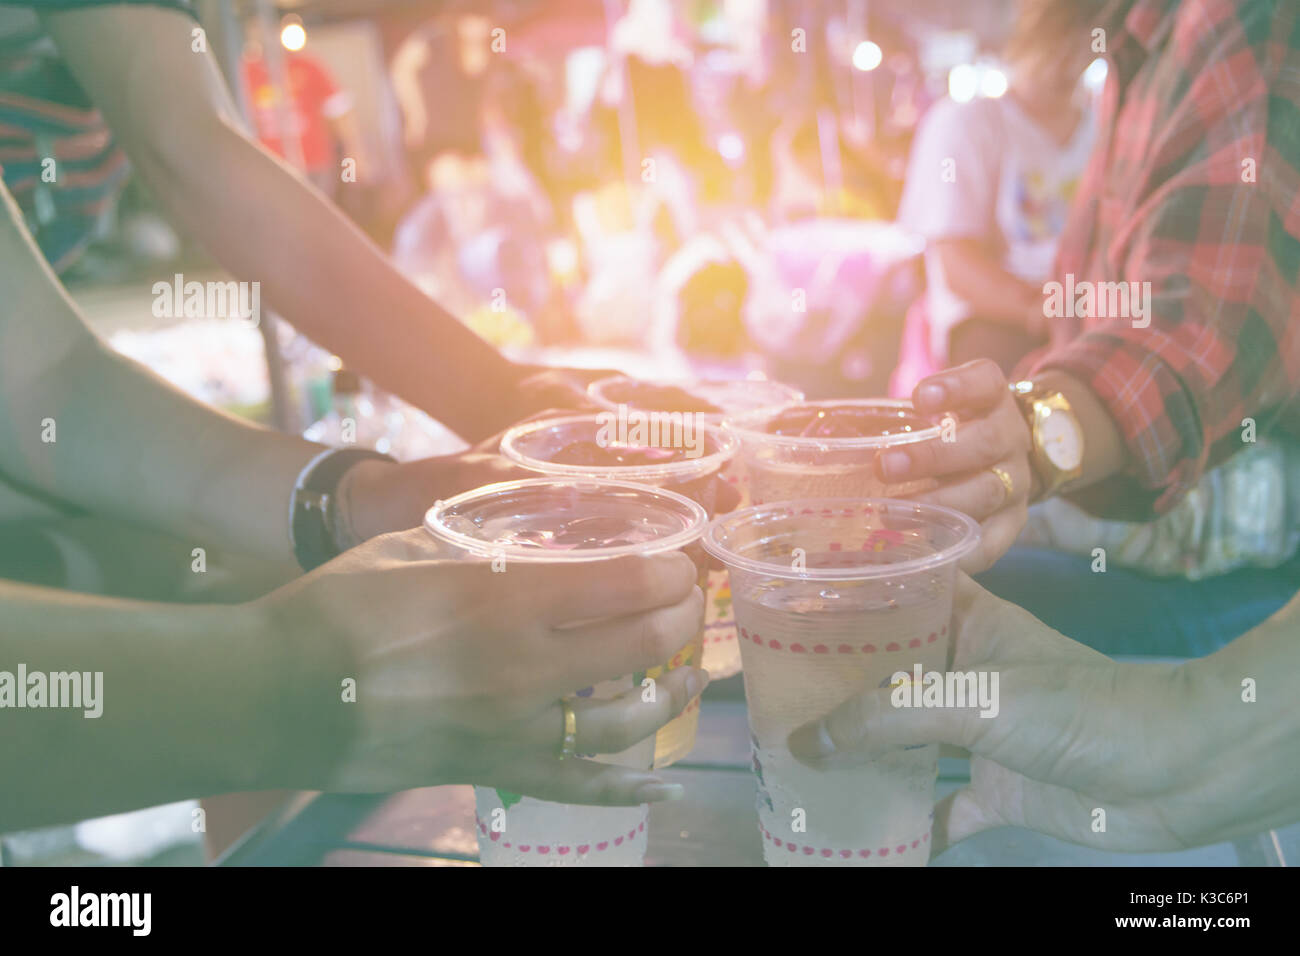 Friends clinking glasses above table.People holding glasses. cheering and celebration concept. - Stock Image